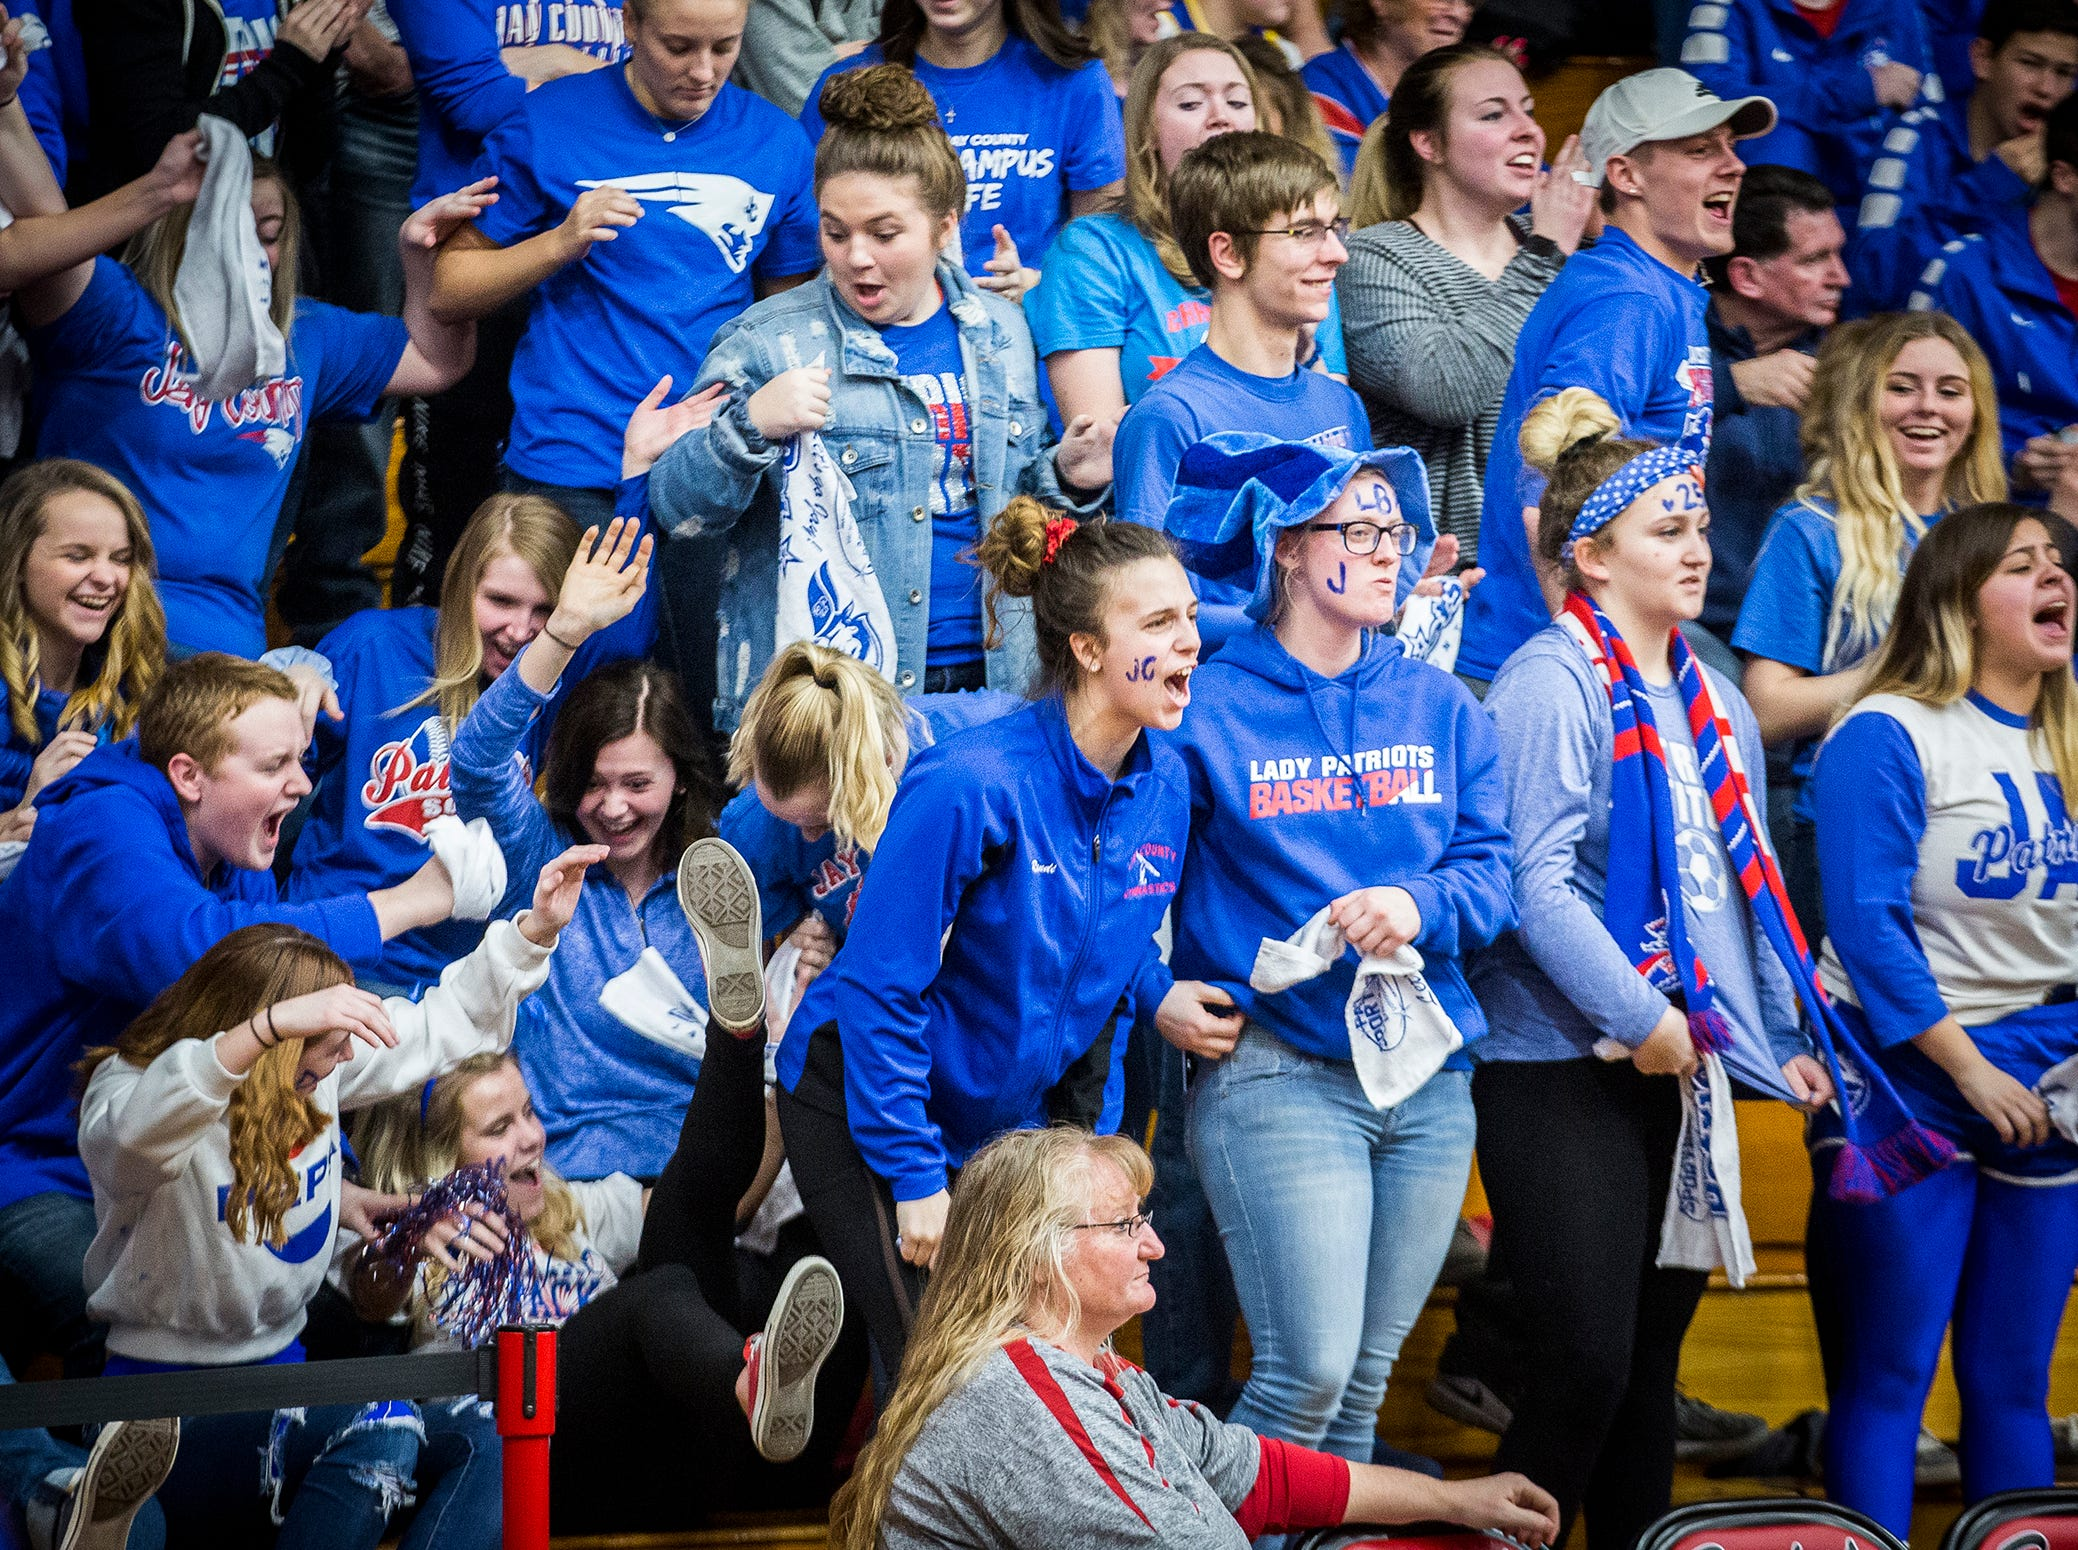 Blackford faces off against Jay County during their game at Blackford High School Saturday, Jan. 26, 2019.